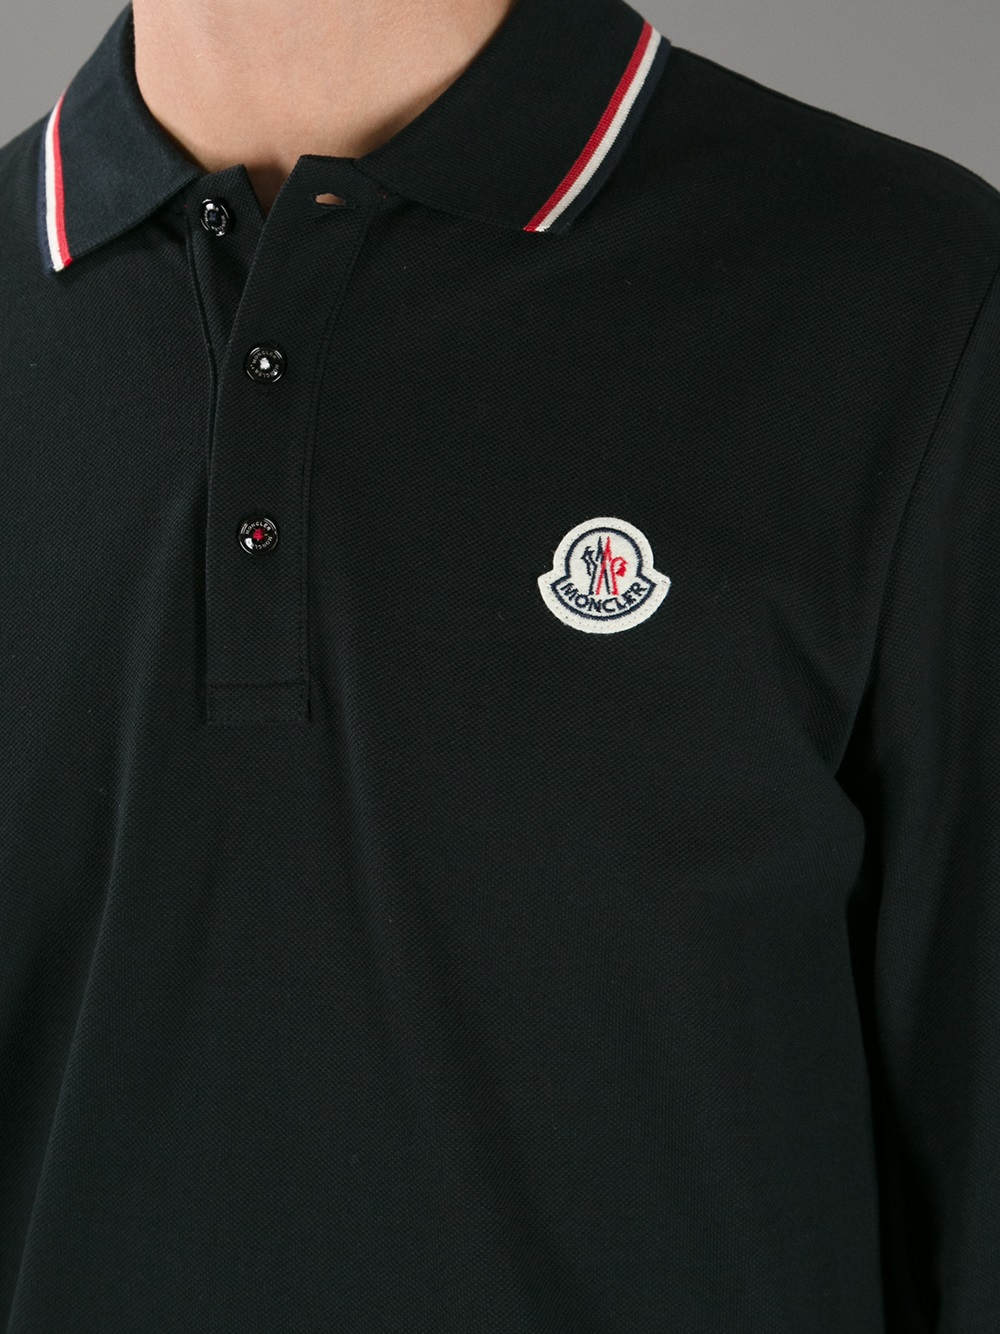 c14cf6281f56 Lyst - Moncler Long Sleeve Polo Shirt in Black for Men